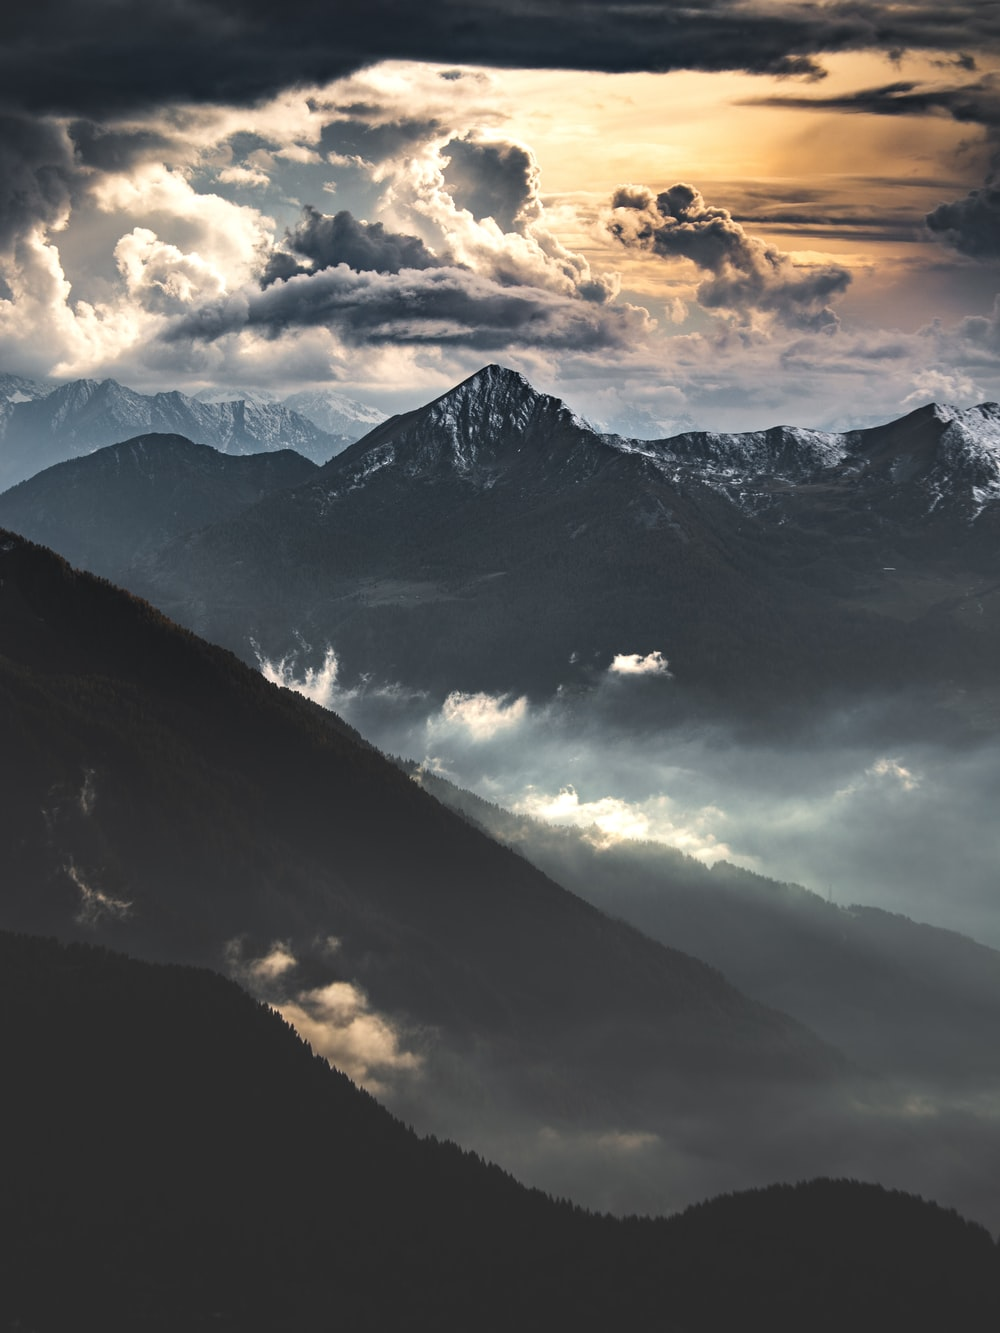 black and white mountains under cloudy sky during daytime